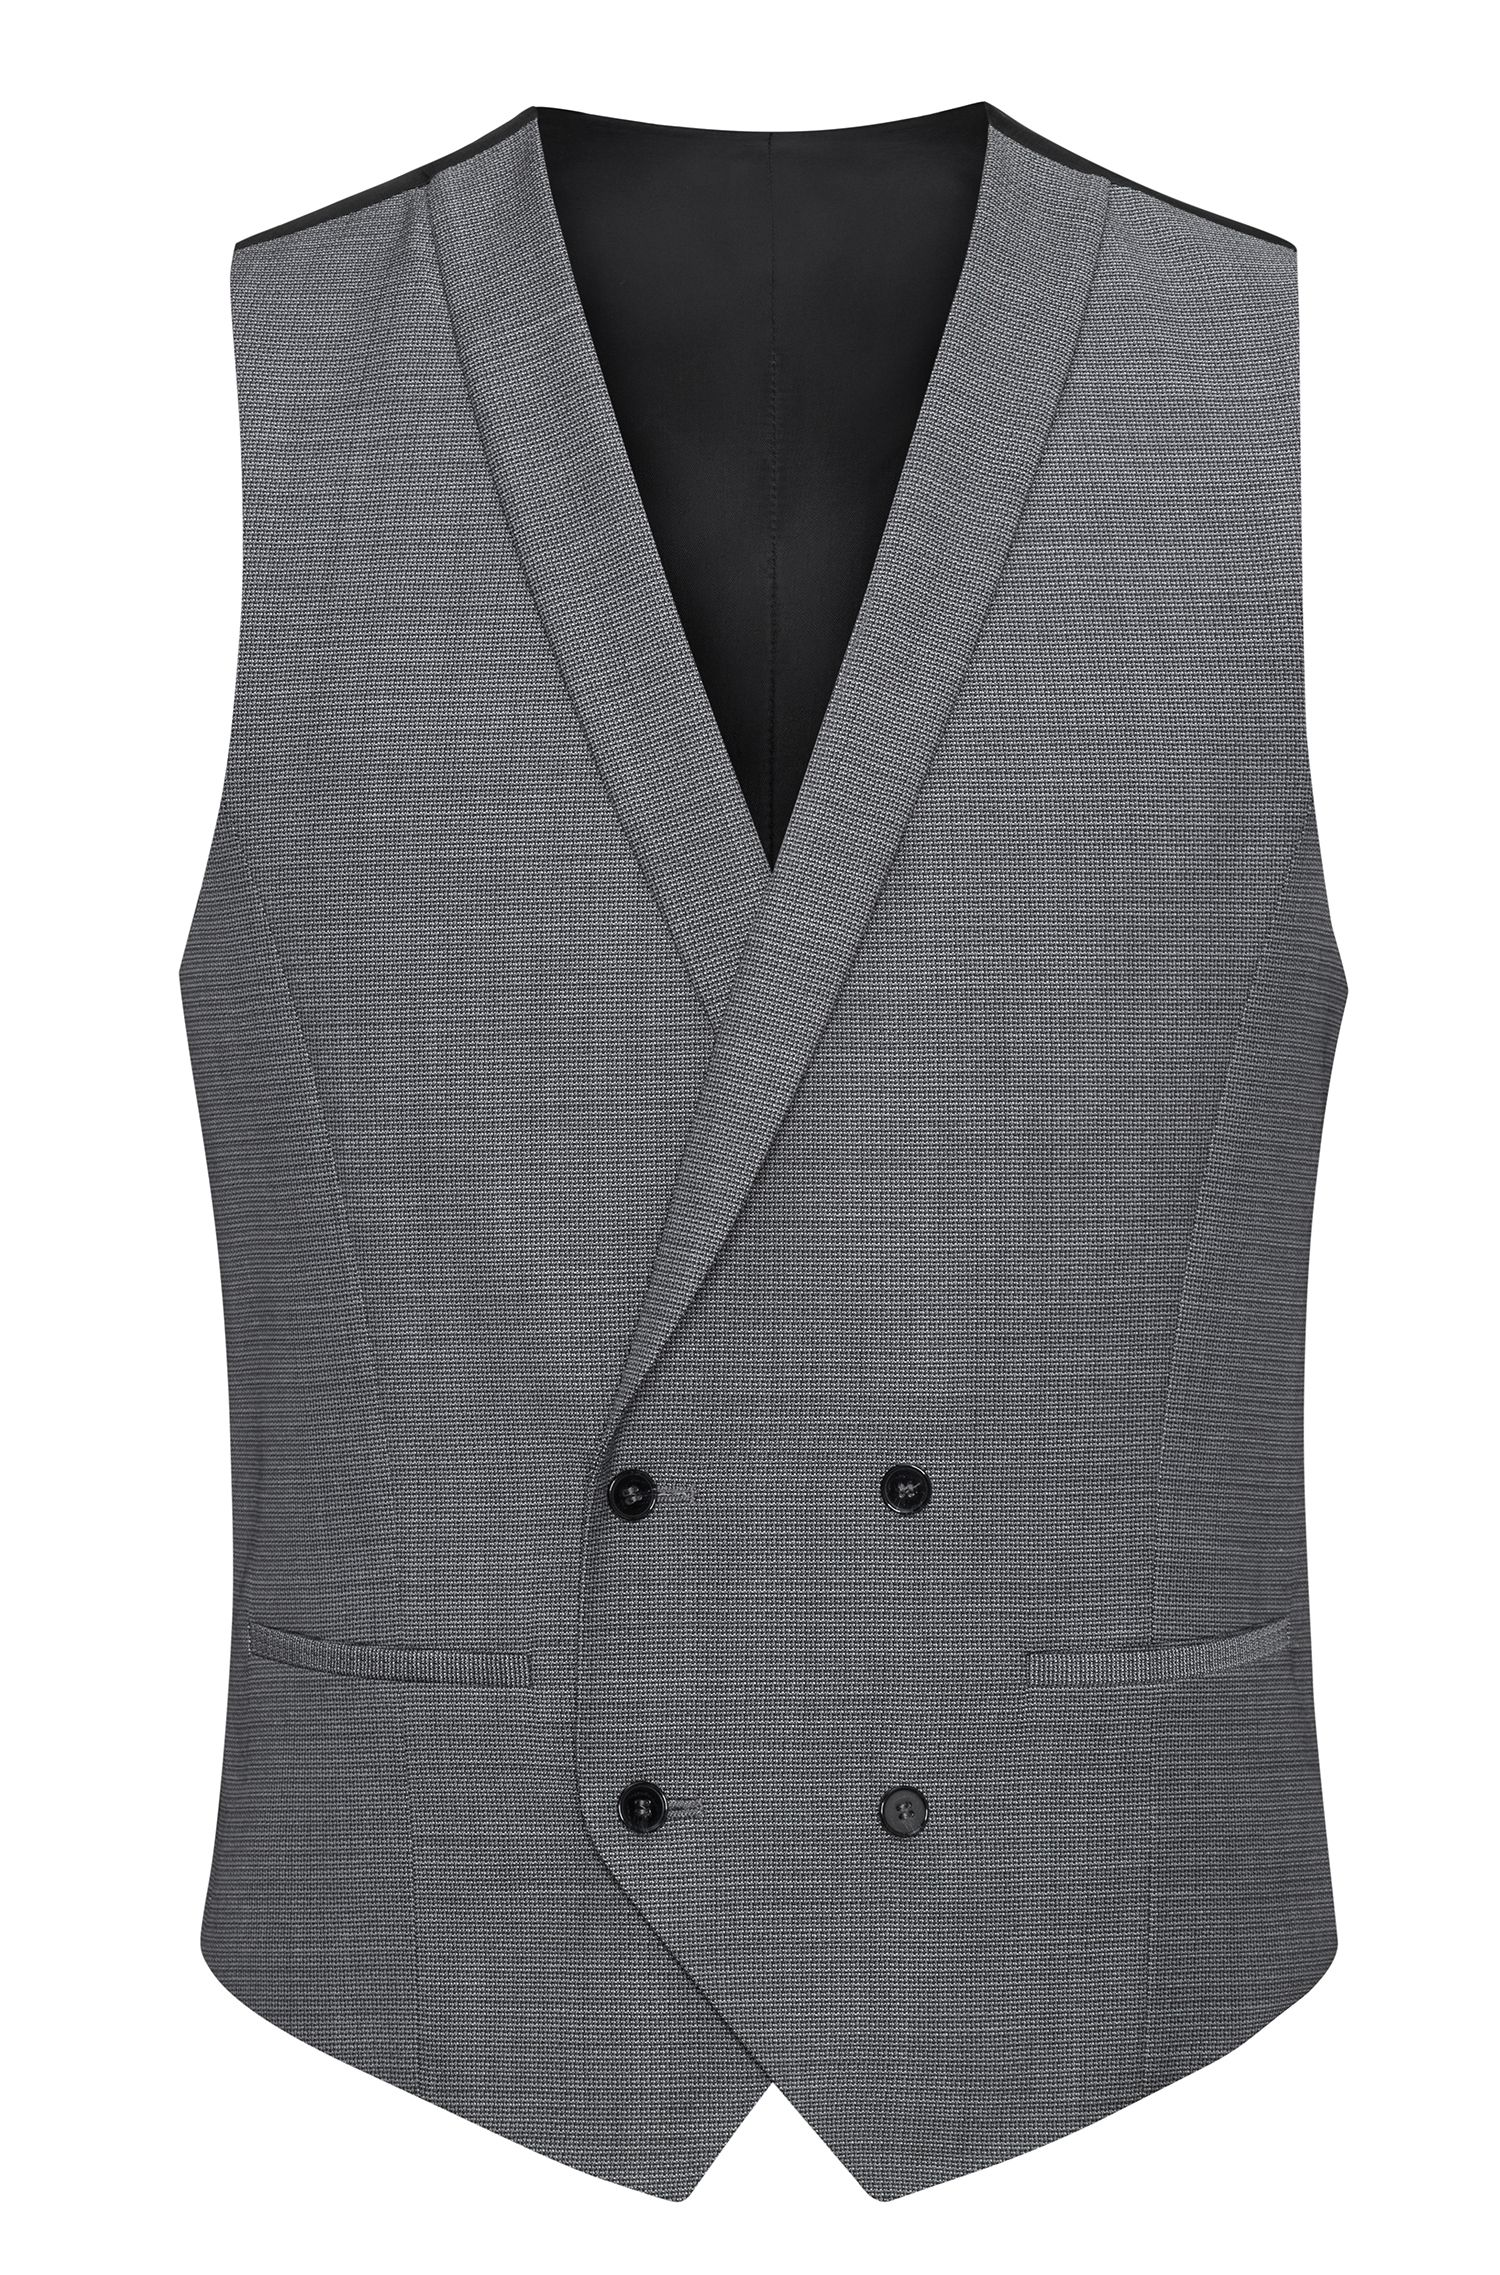 Super 100s Virgin Wool 3-Piece Suit, Extra Slim Fit | Admon/Wilms/Hesten